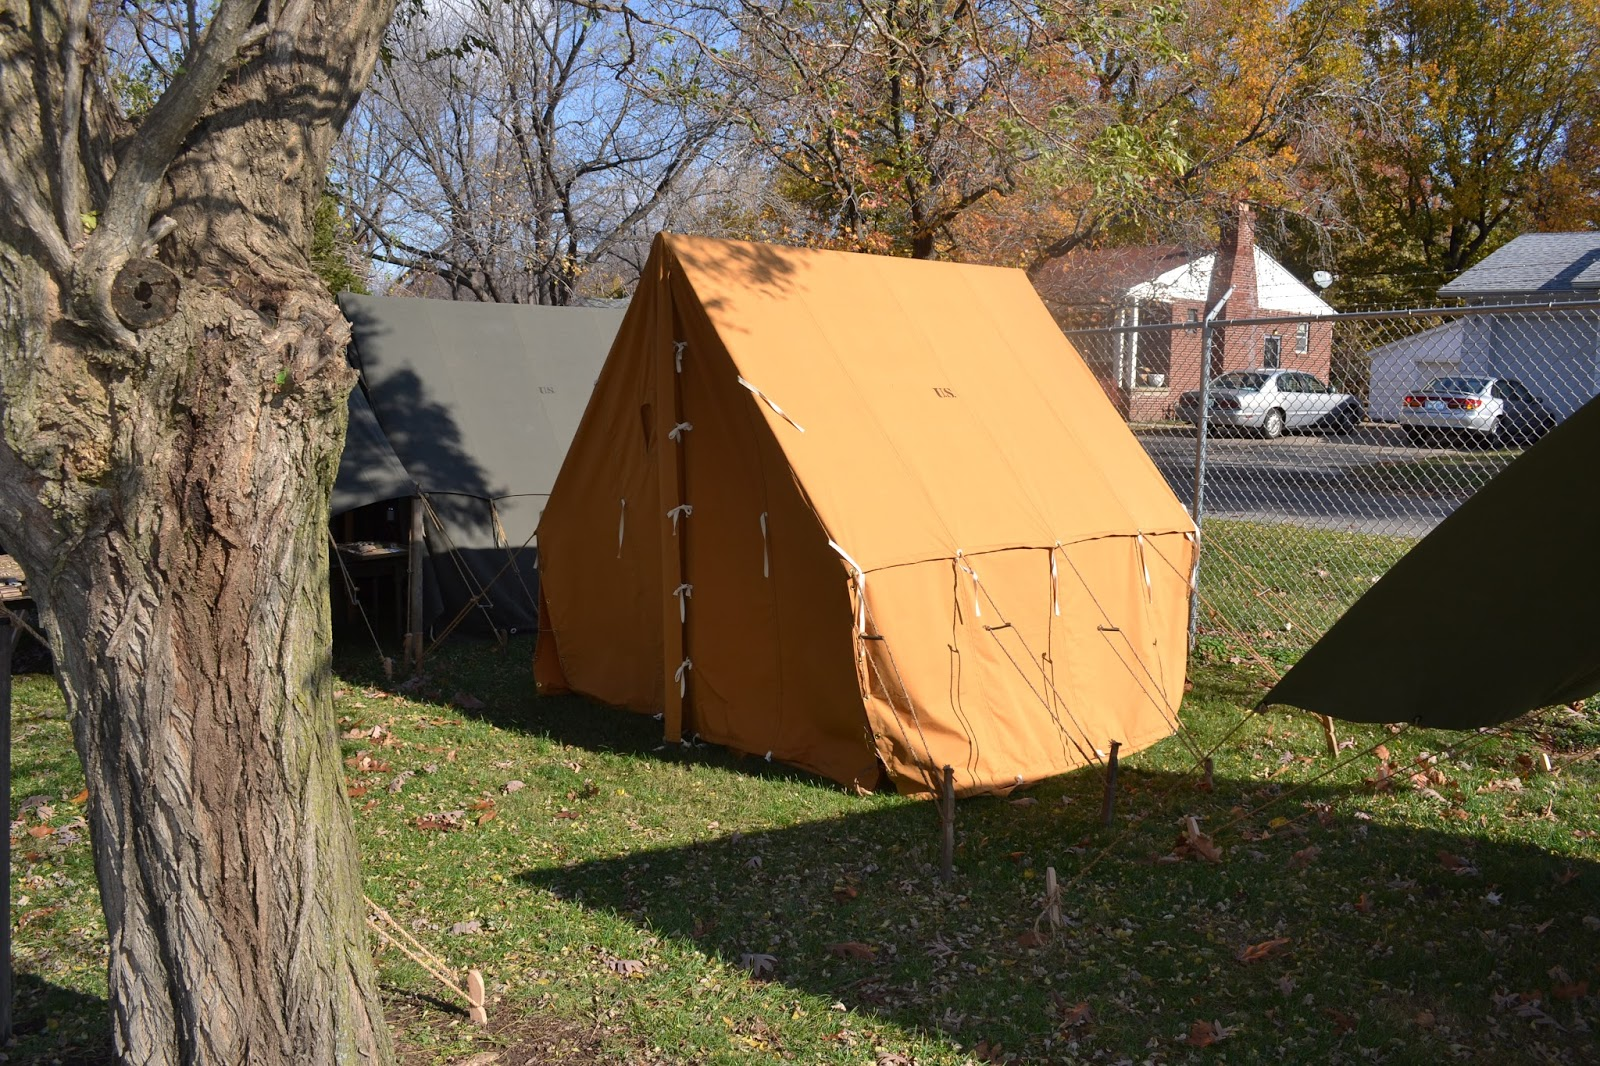 Used Party Tents For Sale >> World War One Tents for Sale from Armbruster | Armbruster ...